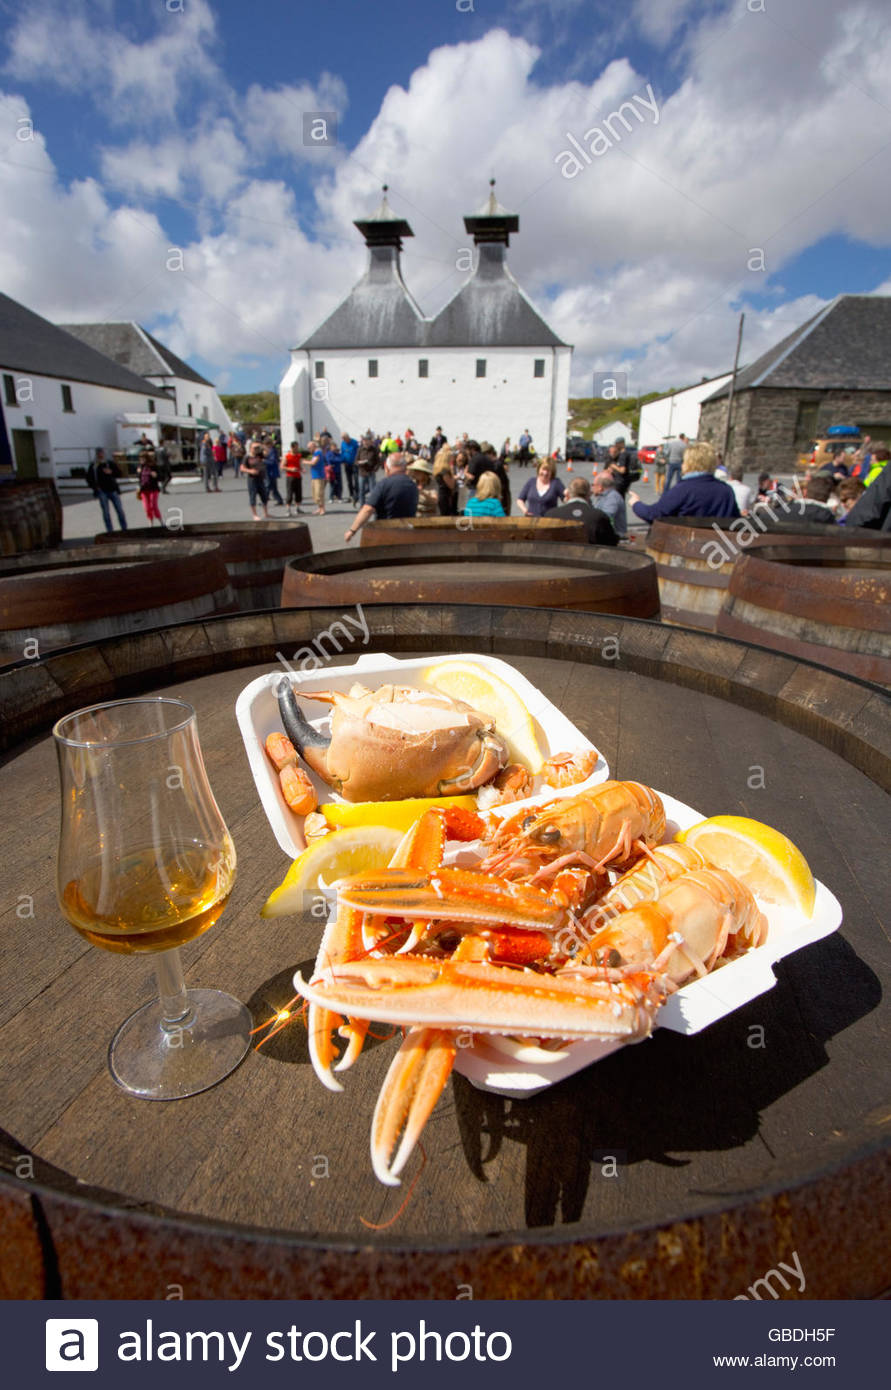 Takeaway crab and langoustines served at Ardbeg Distillery during an event, on the Isle of Islay, Inner Hebrides, - Stock Image